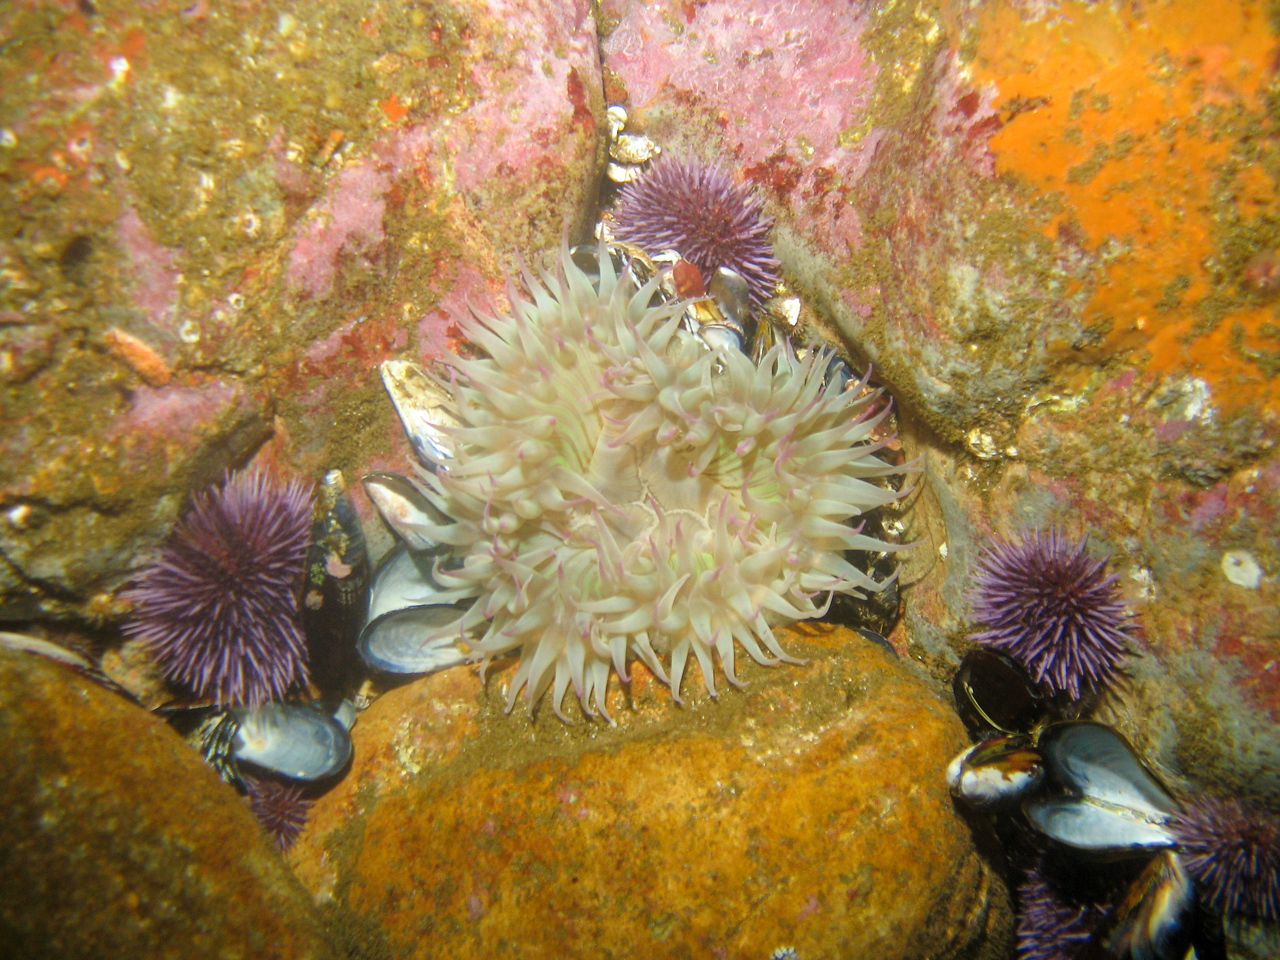 Another anemone.